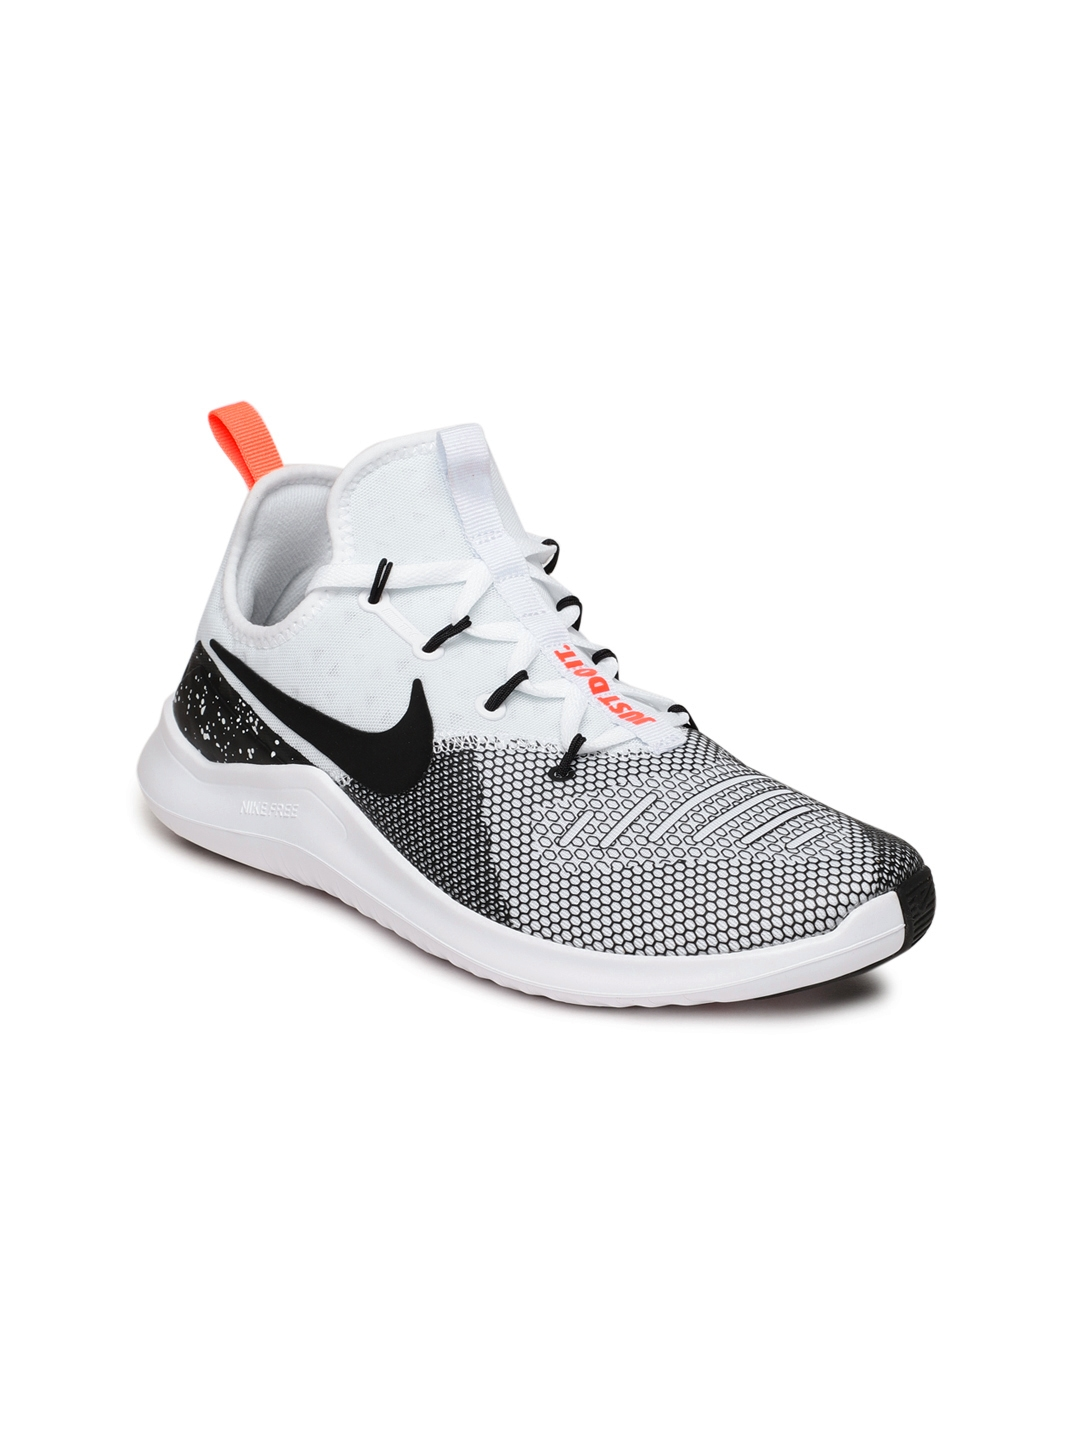 6d412d8a9738 Buy Nike Women White   Black Free TR 8 Training Shoes - Sports Shoes ...